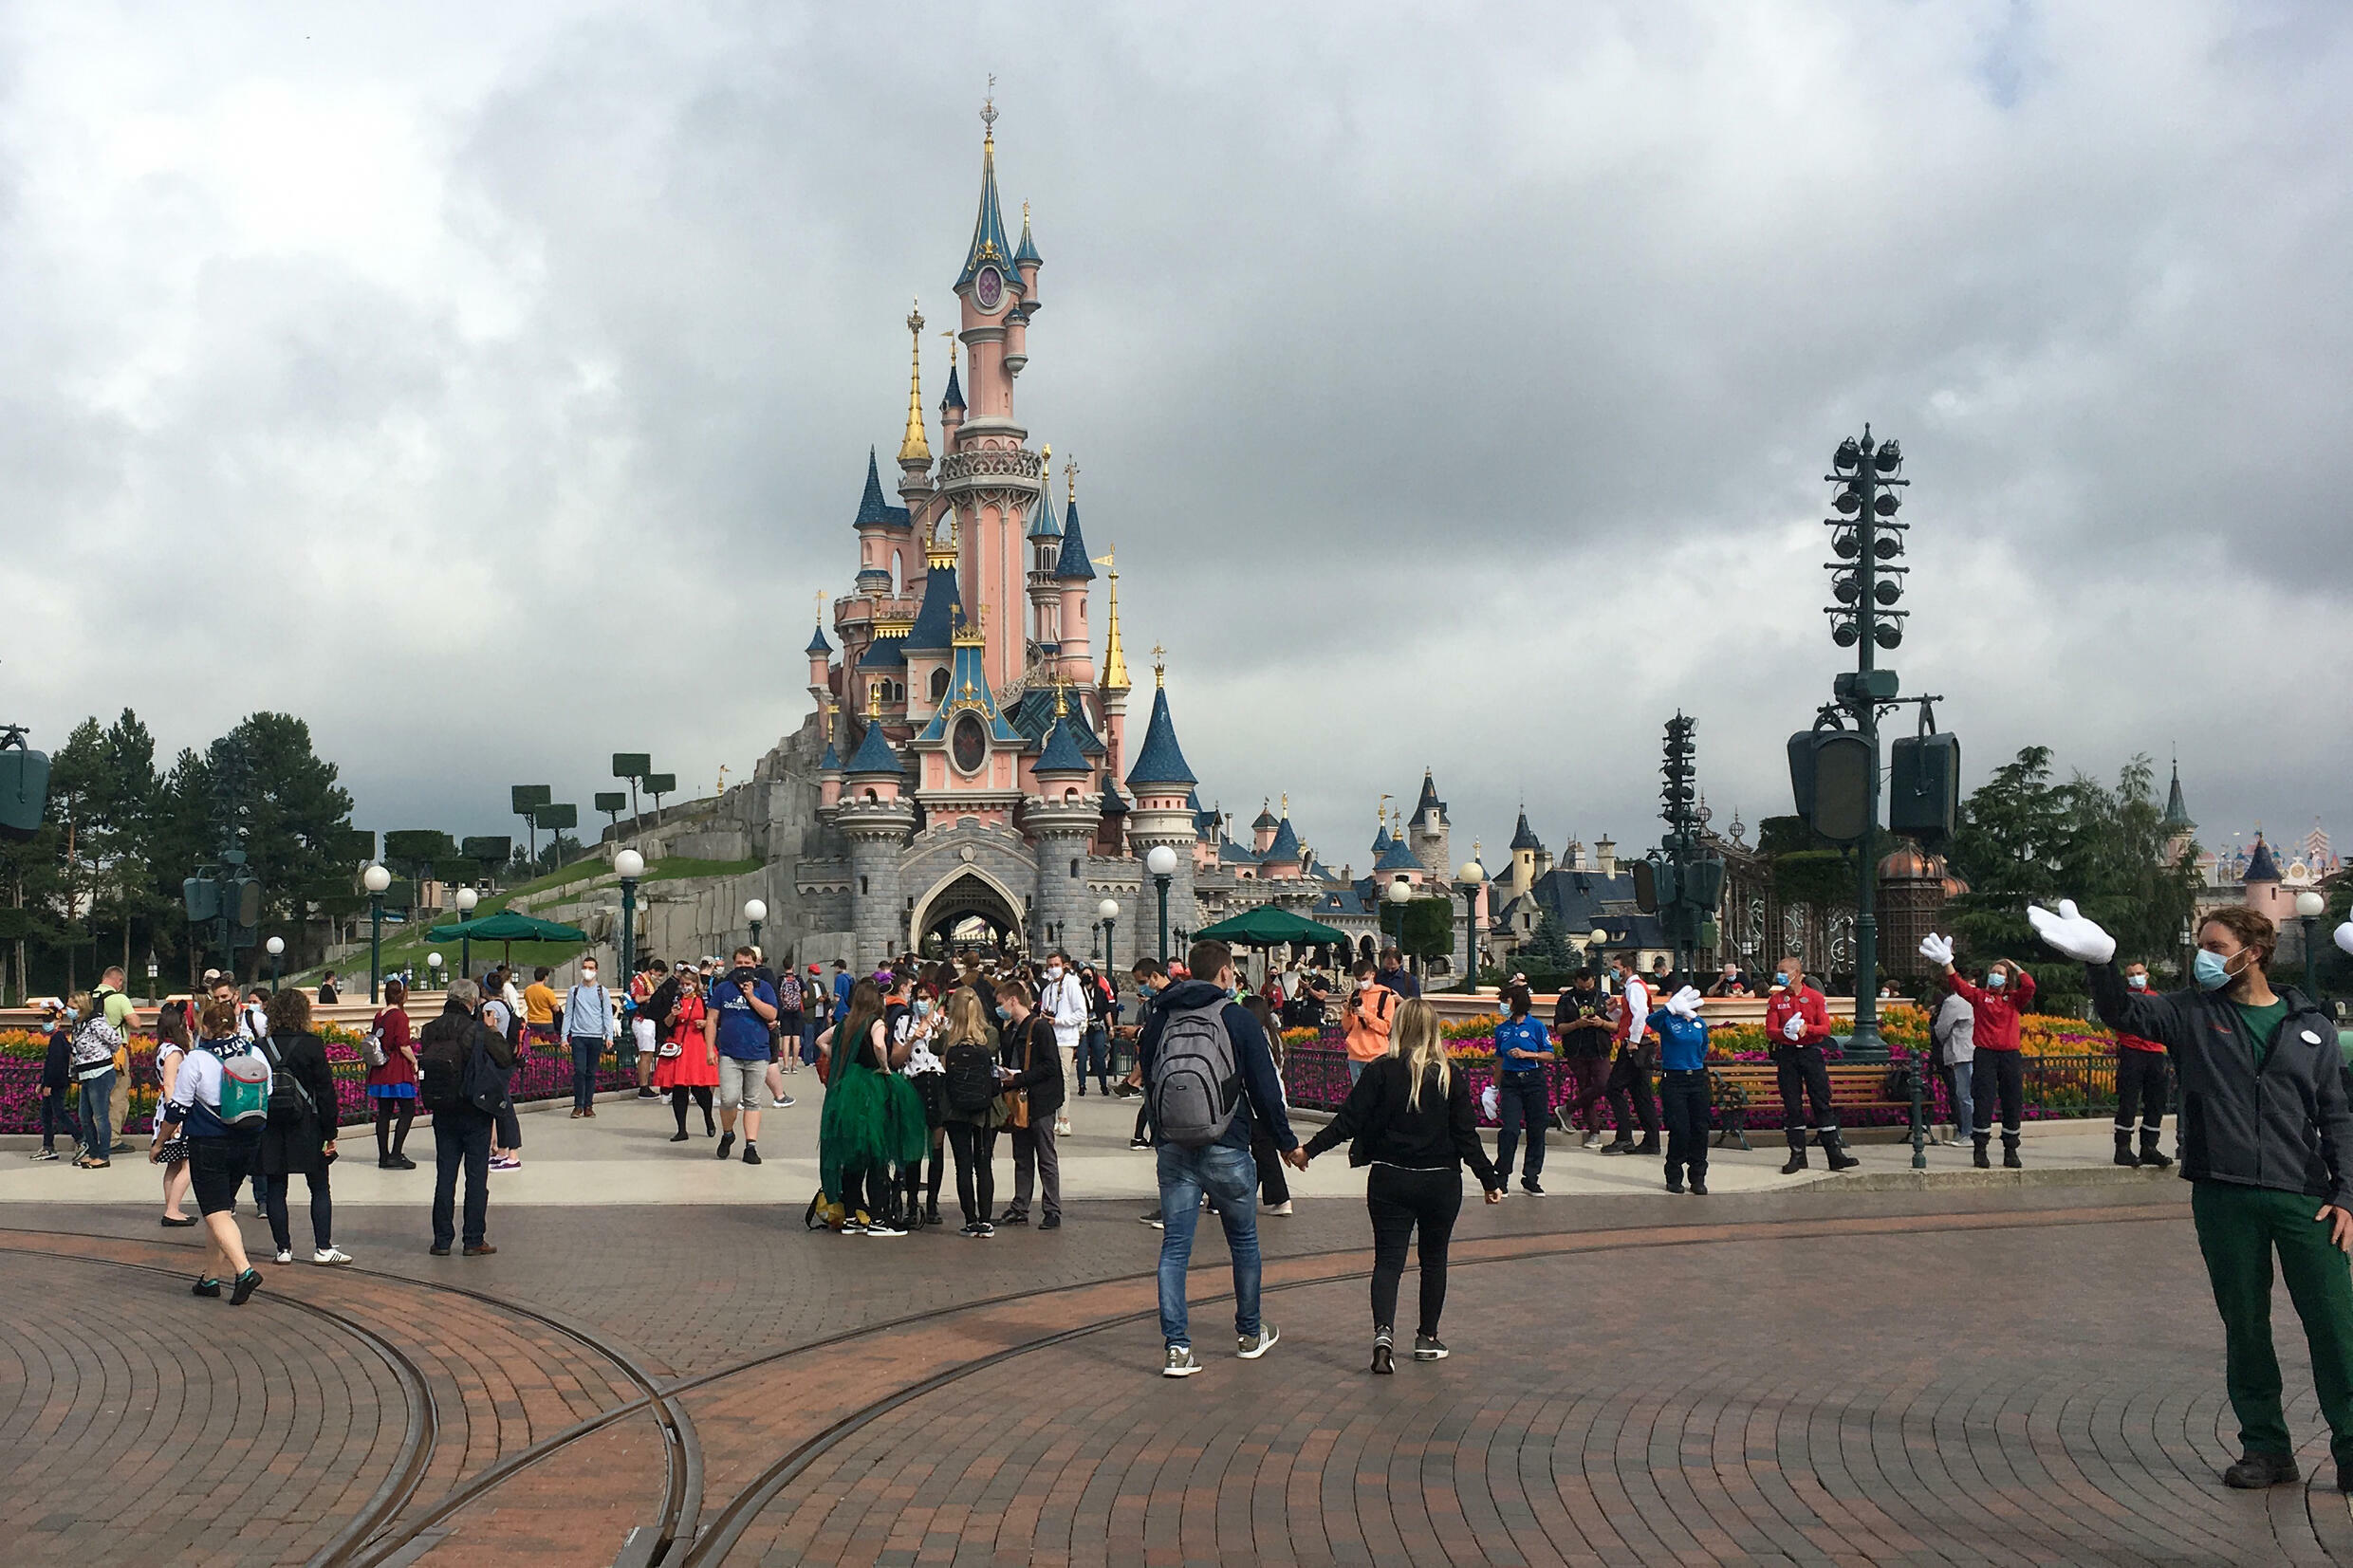 Disneyland said it 'profoundly regrets this situation' after the incident drew ire